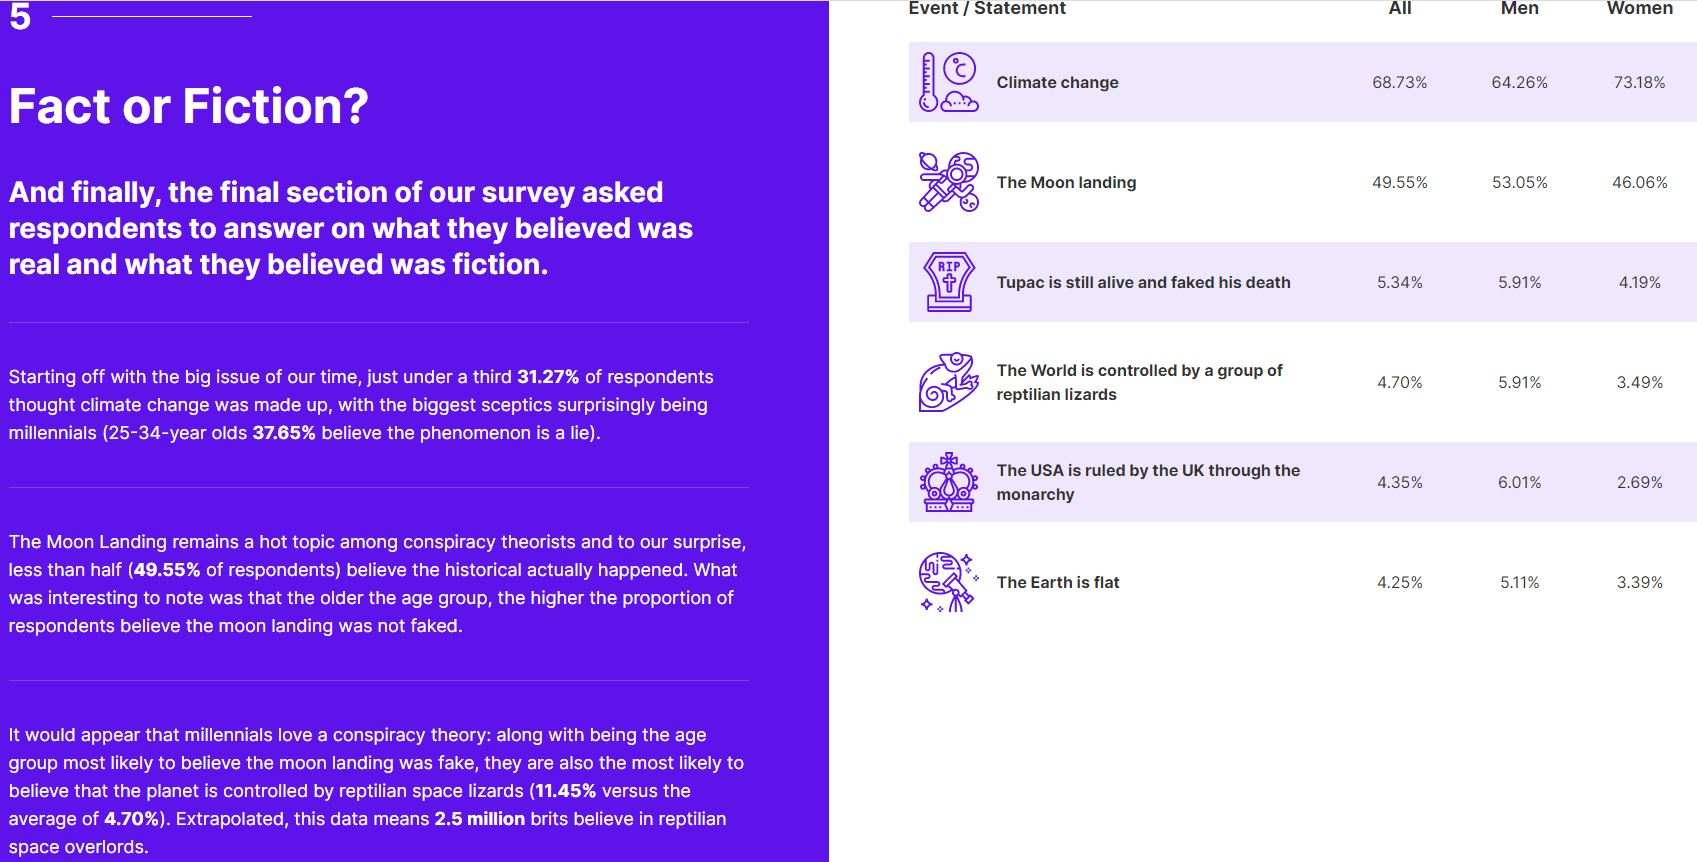 65% Of British Millennials Think The Moon Landing Was Fake, 11% Think Tupac's Death Was Faked Too